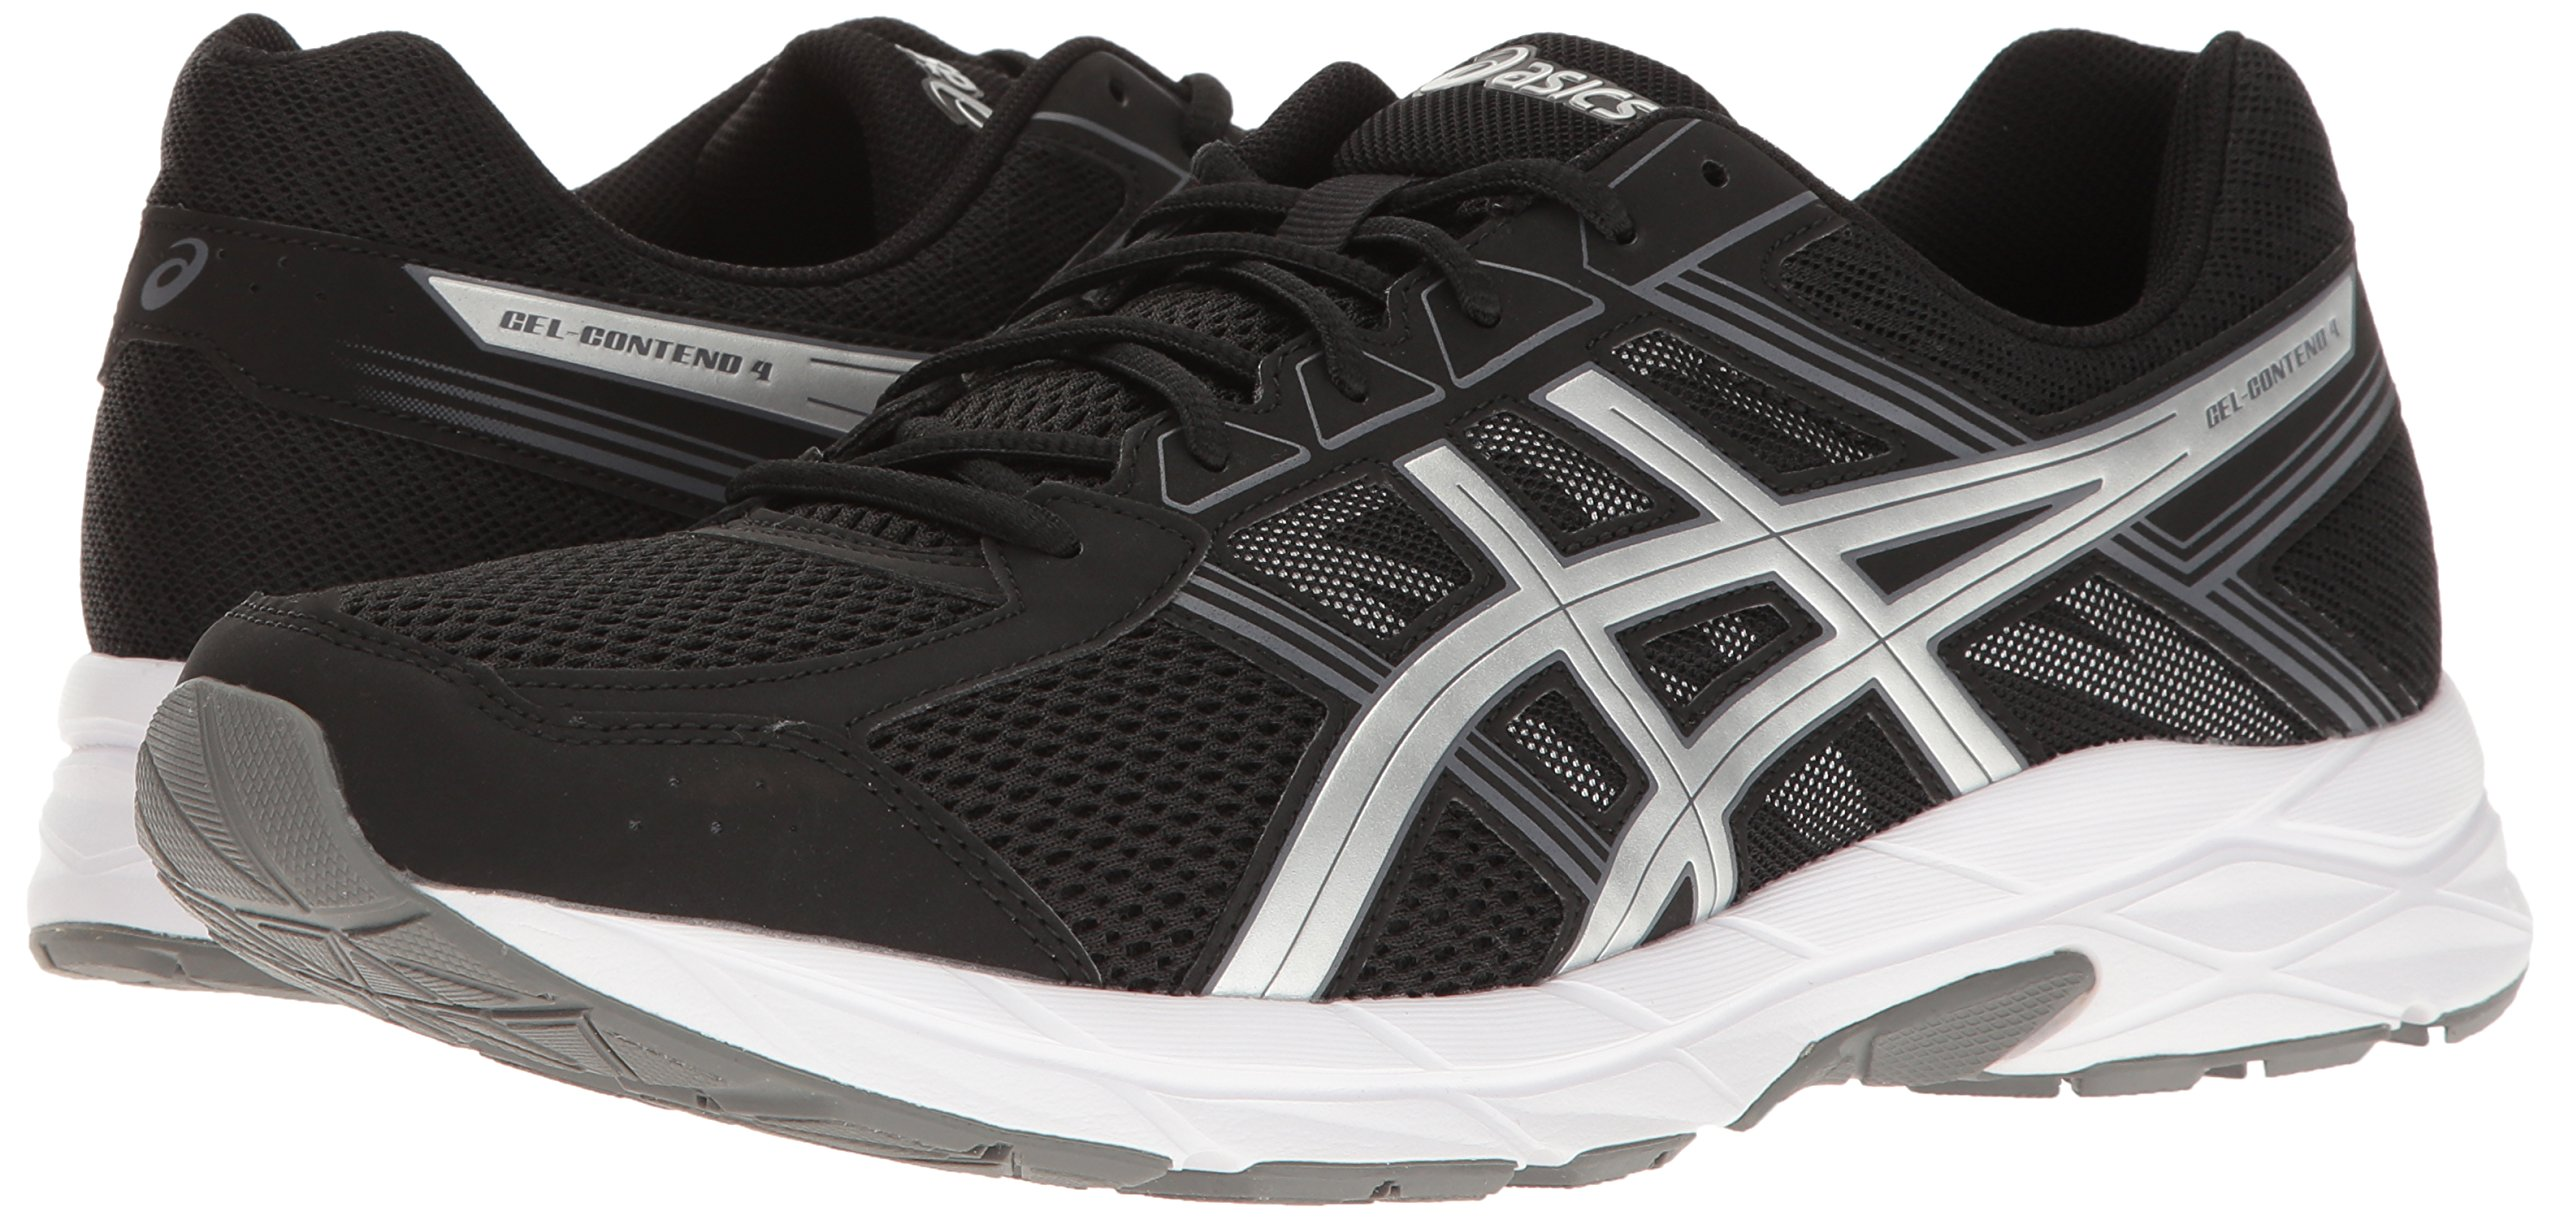 ASICS Men's Gel-Contend 4 Running Shoe, Black/Silver/Carbon, 7.5 M US by ASICS (Image #6)